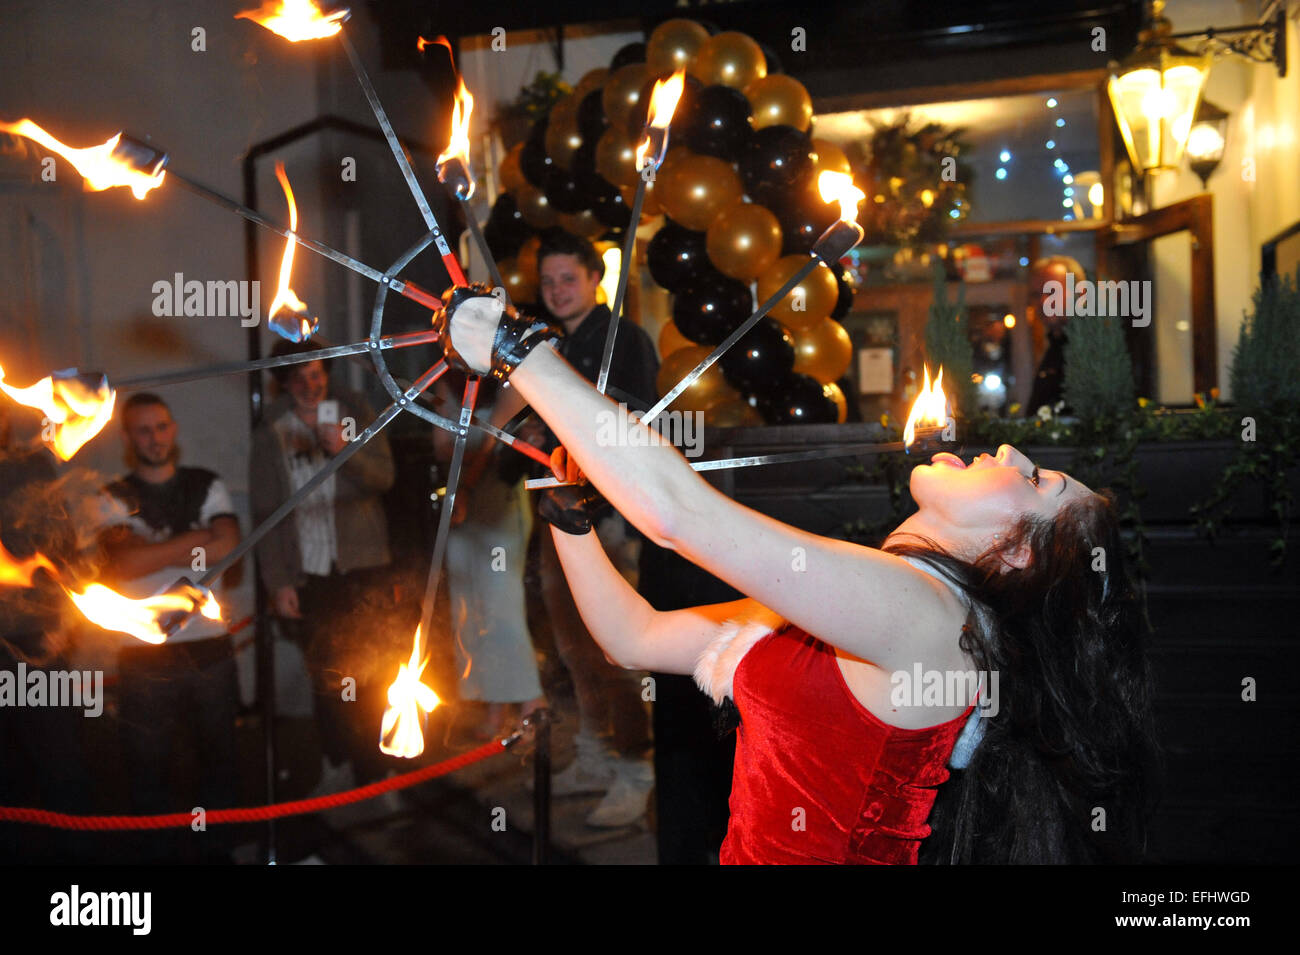 Female Fire eater entertains a crowd outside a pub at an opening party night. - Stock Image